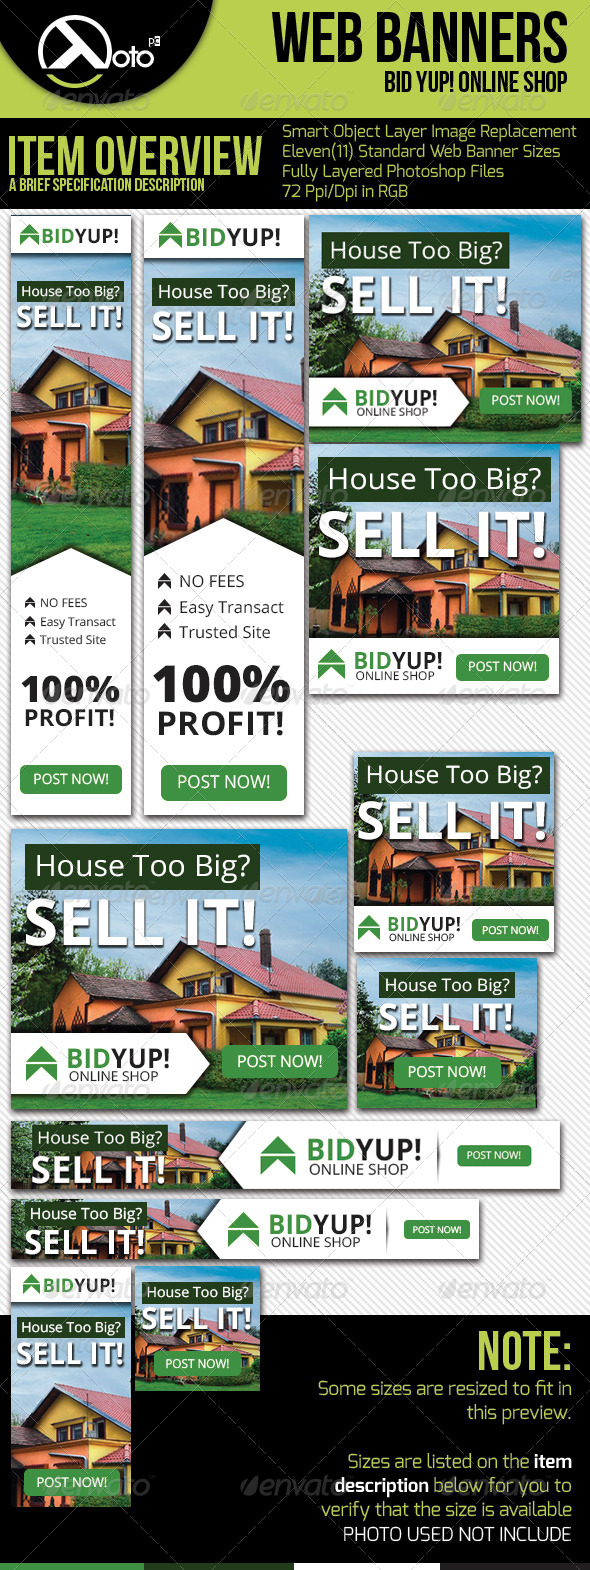 Bid Yup Online Shop Web Banners - Banners & Ads Web Elements